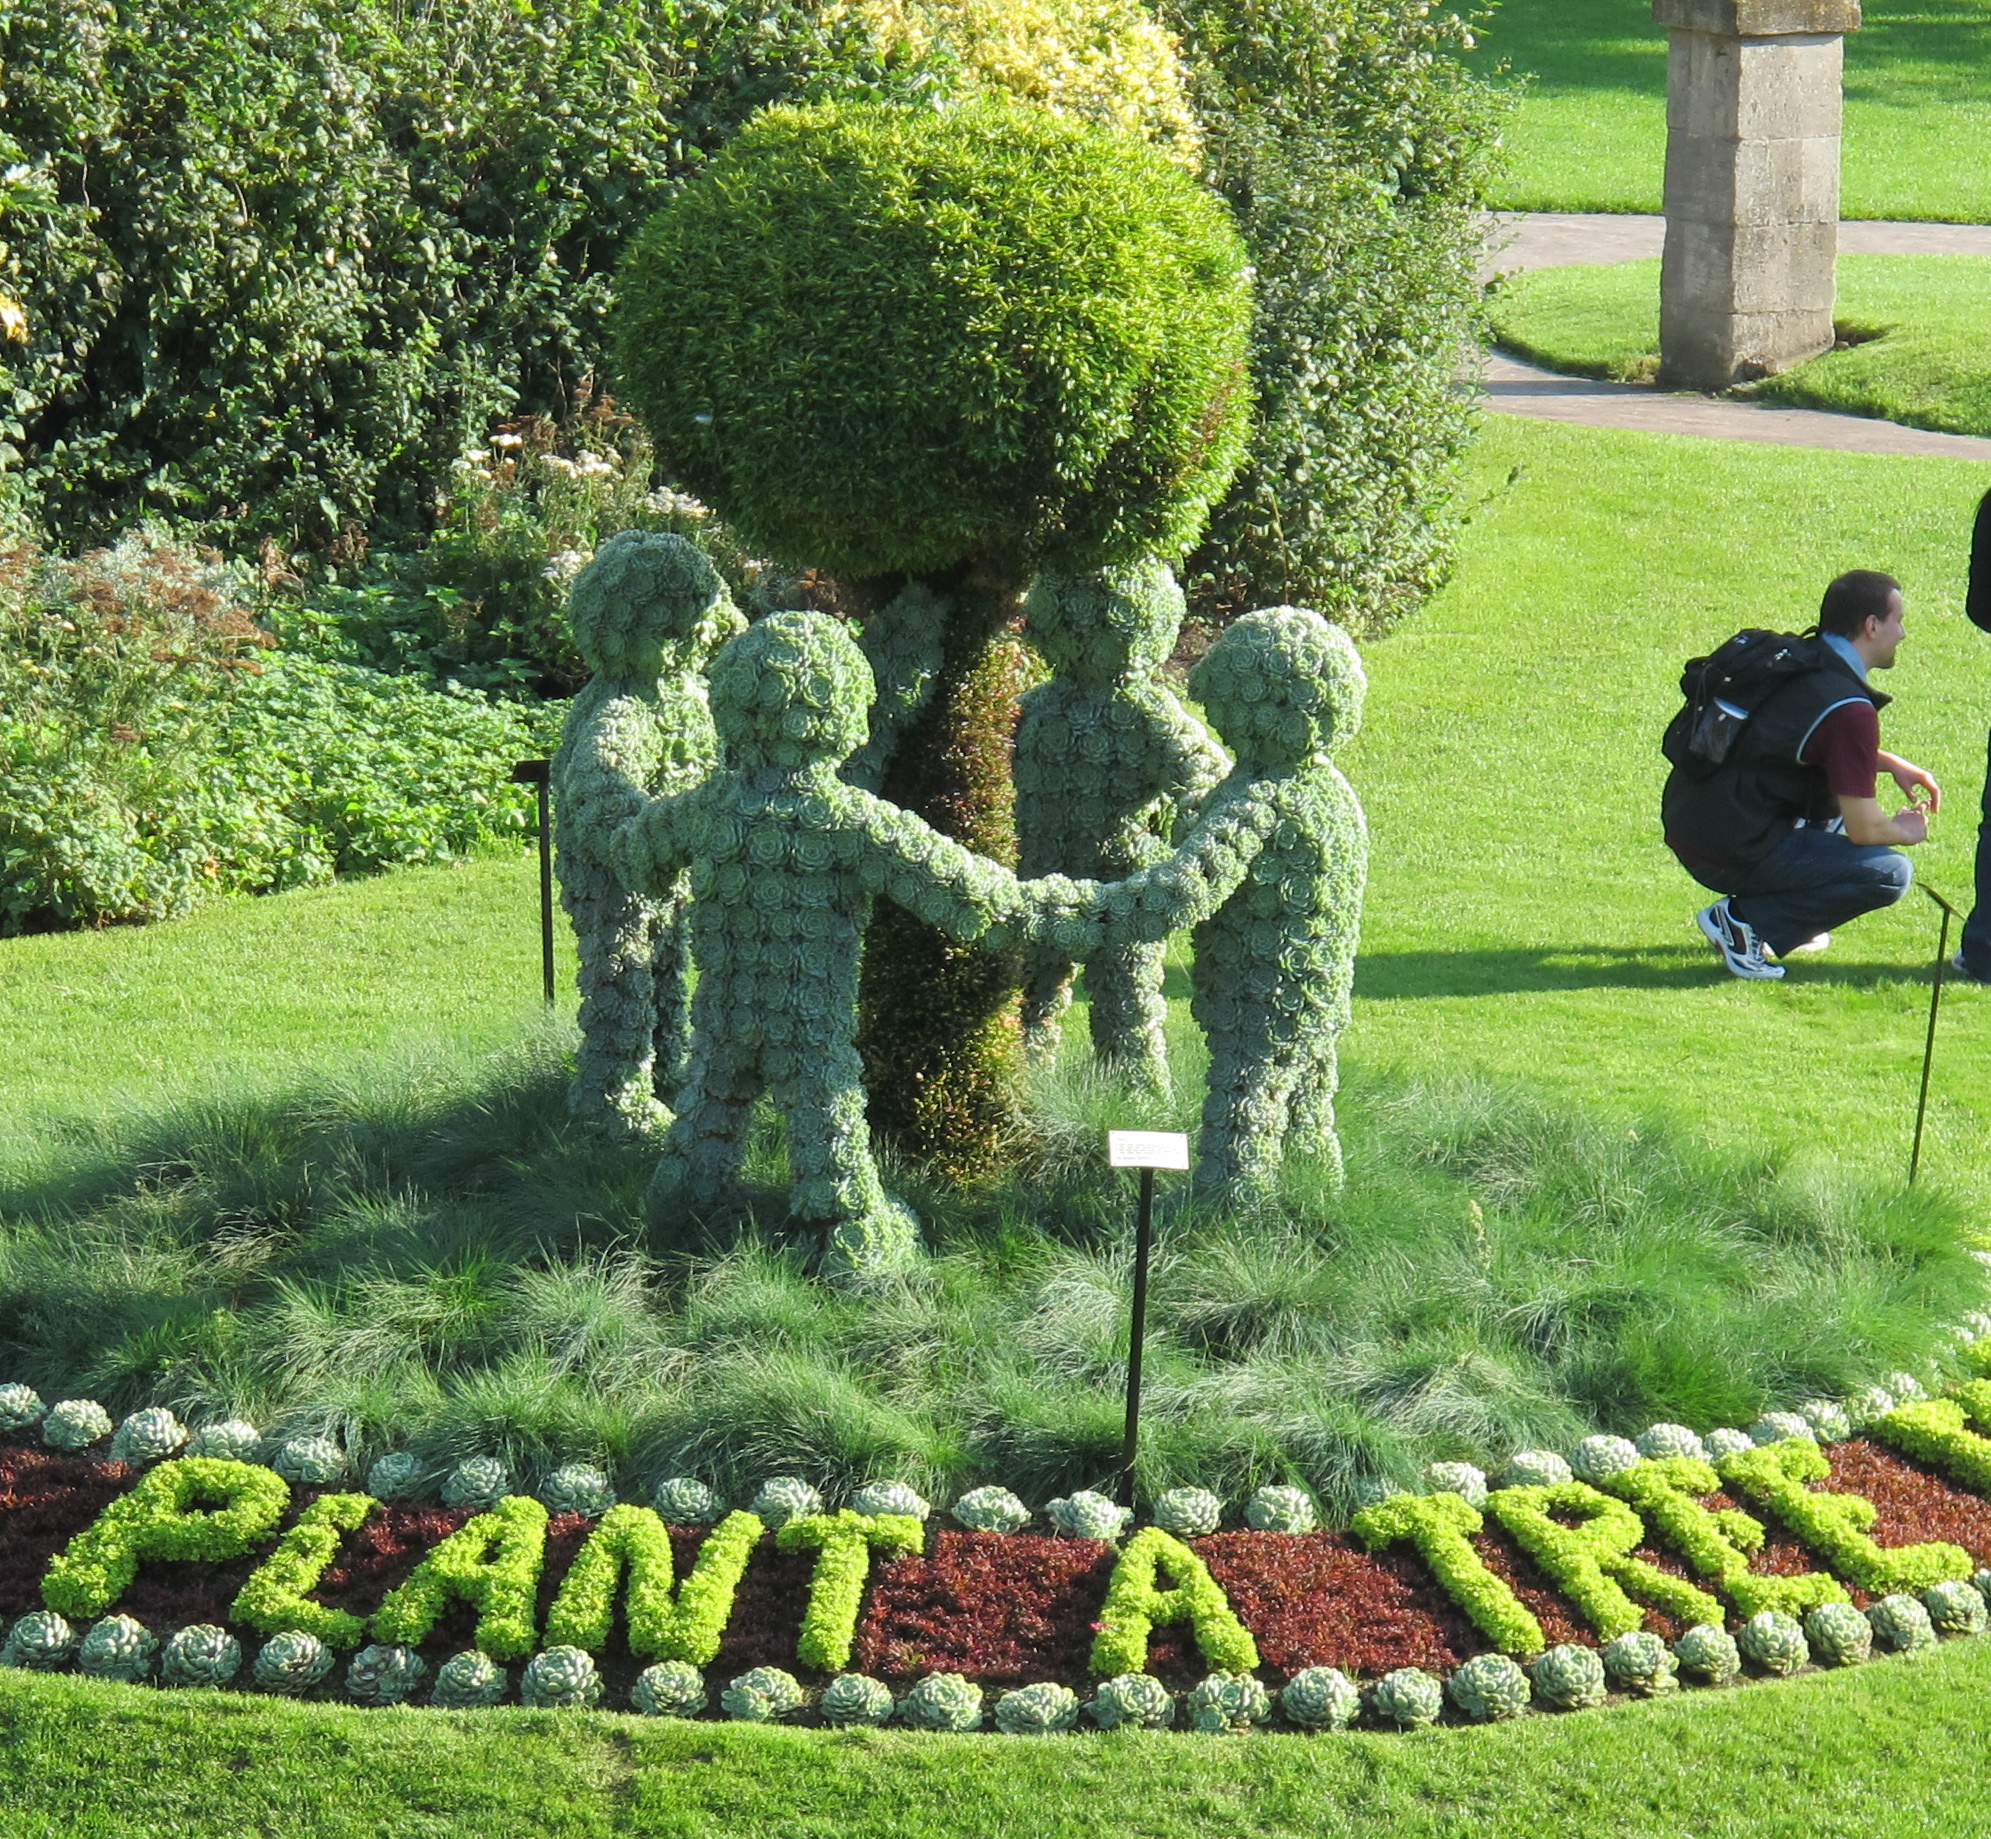 We liked the green-minded topiary in a park in Bath.